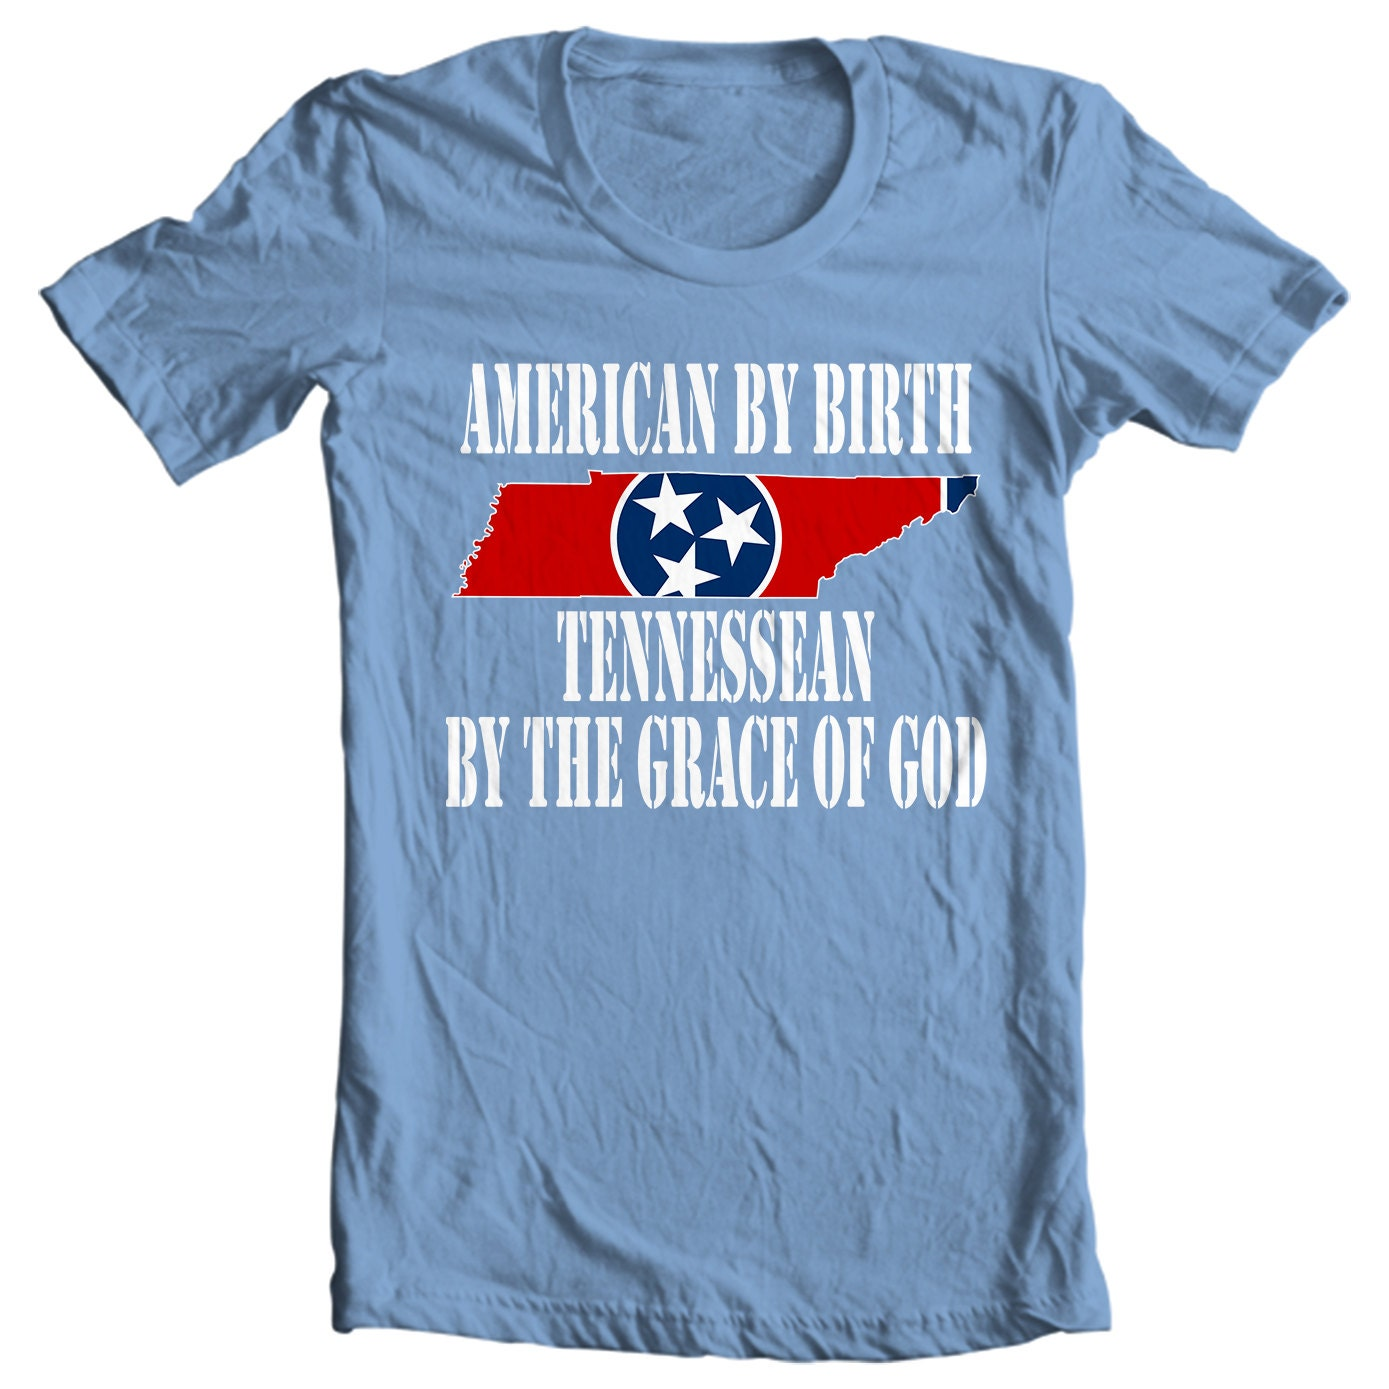 Tennessee T-shirt - American By Birth, Tennessean By The Grace Of God - My State Tennessee T-shirt